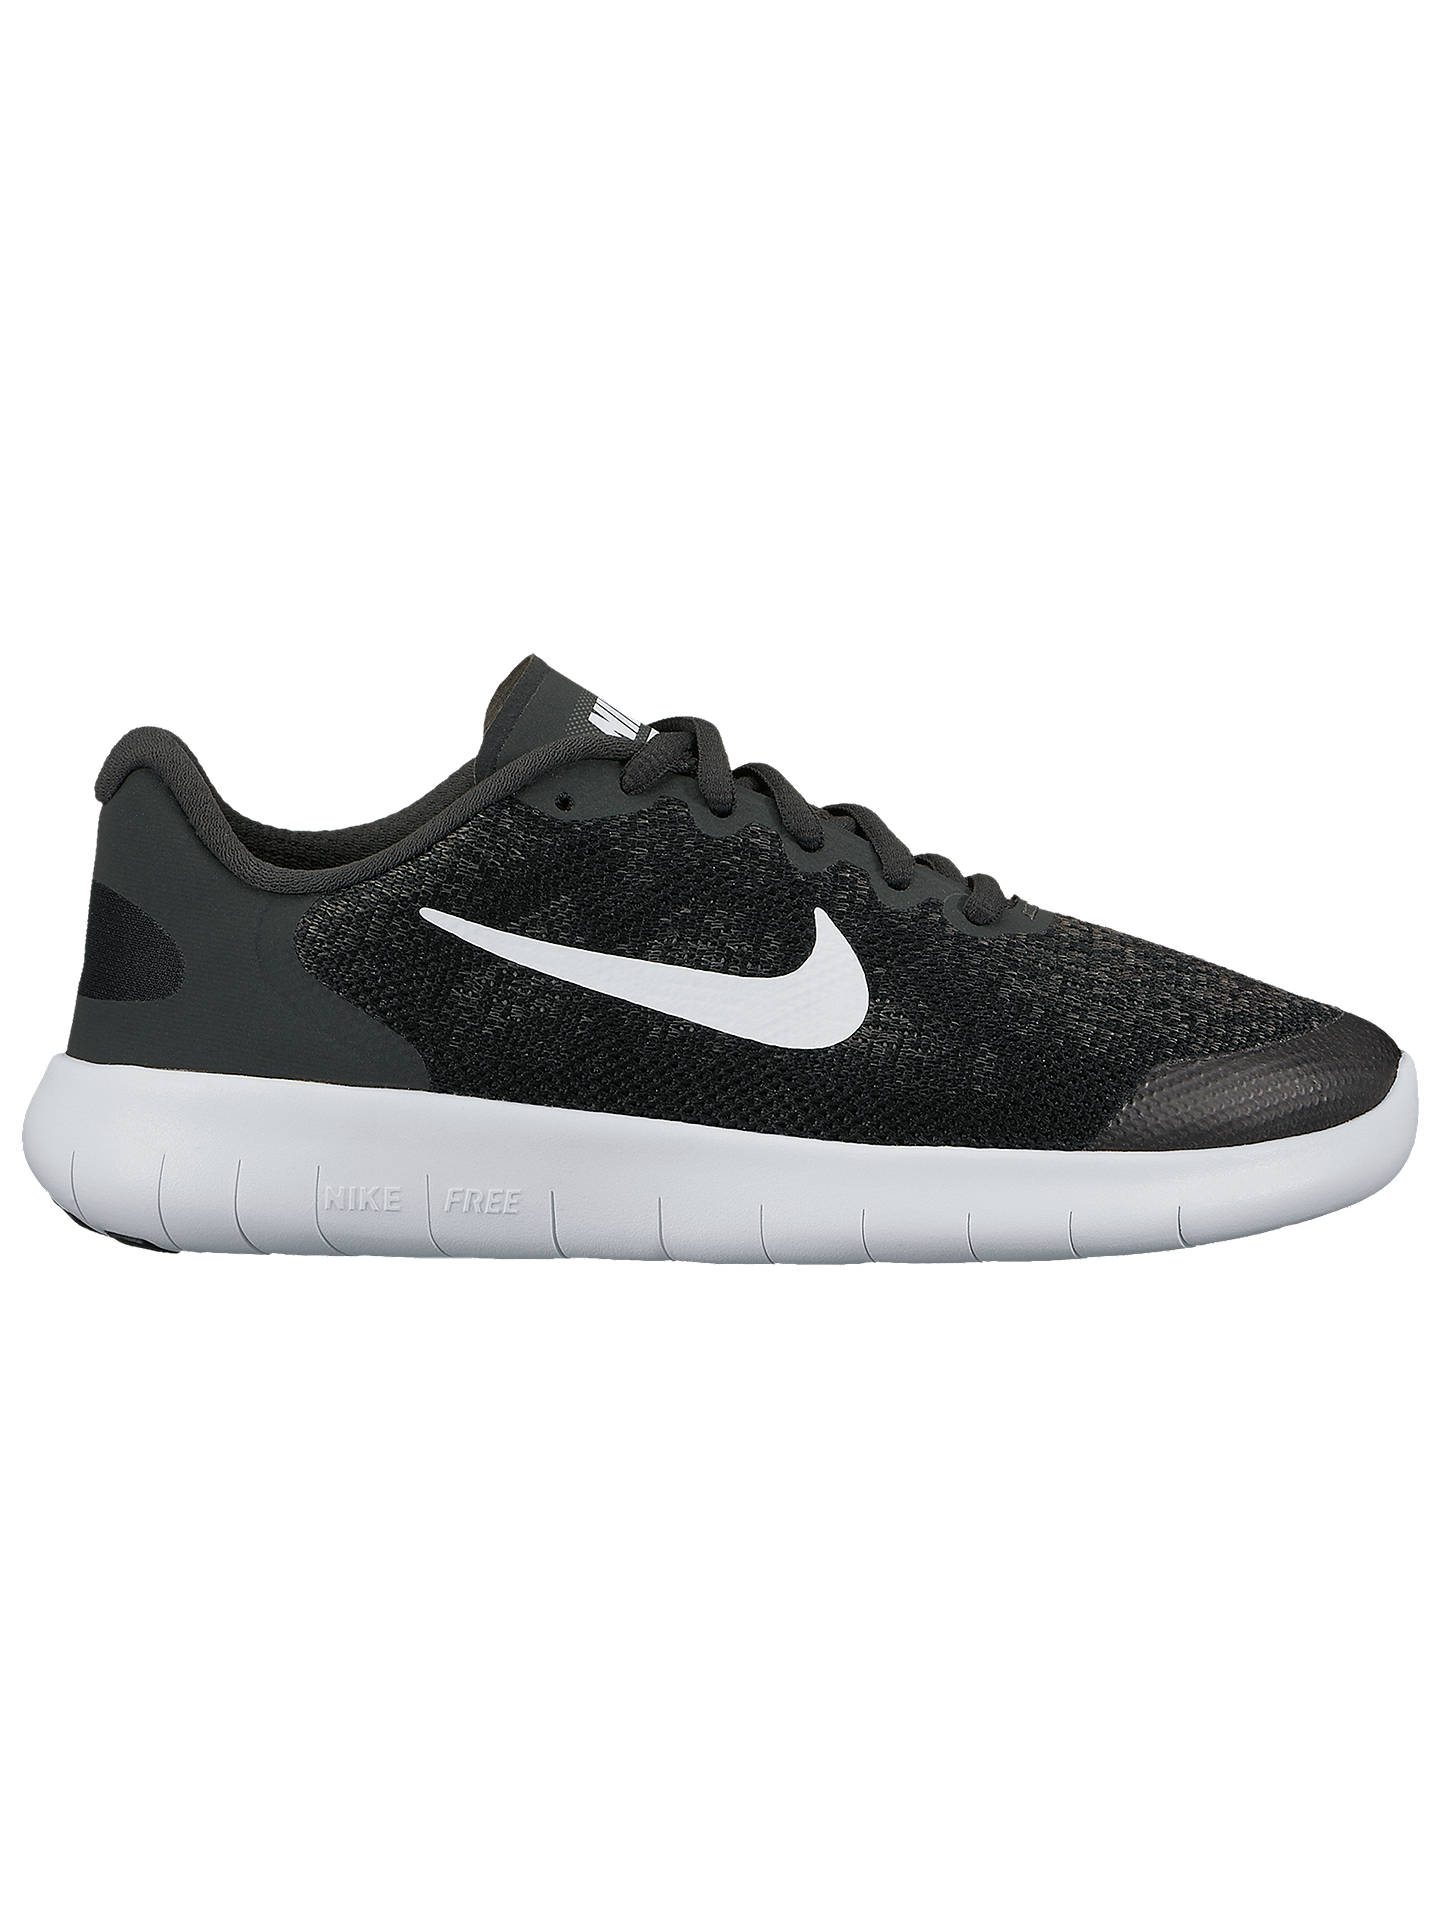 Buy Nike Children's Free Run 2 Lace Up Trainers, Black/White, 3 Online at johnlewis.com